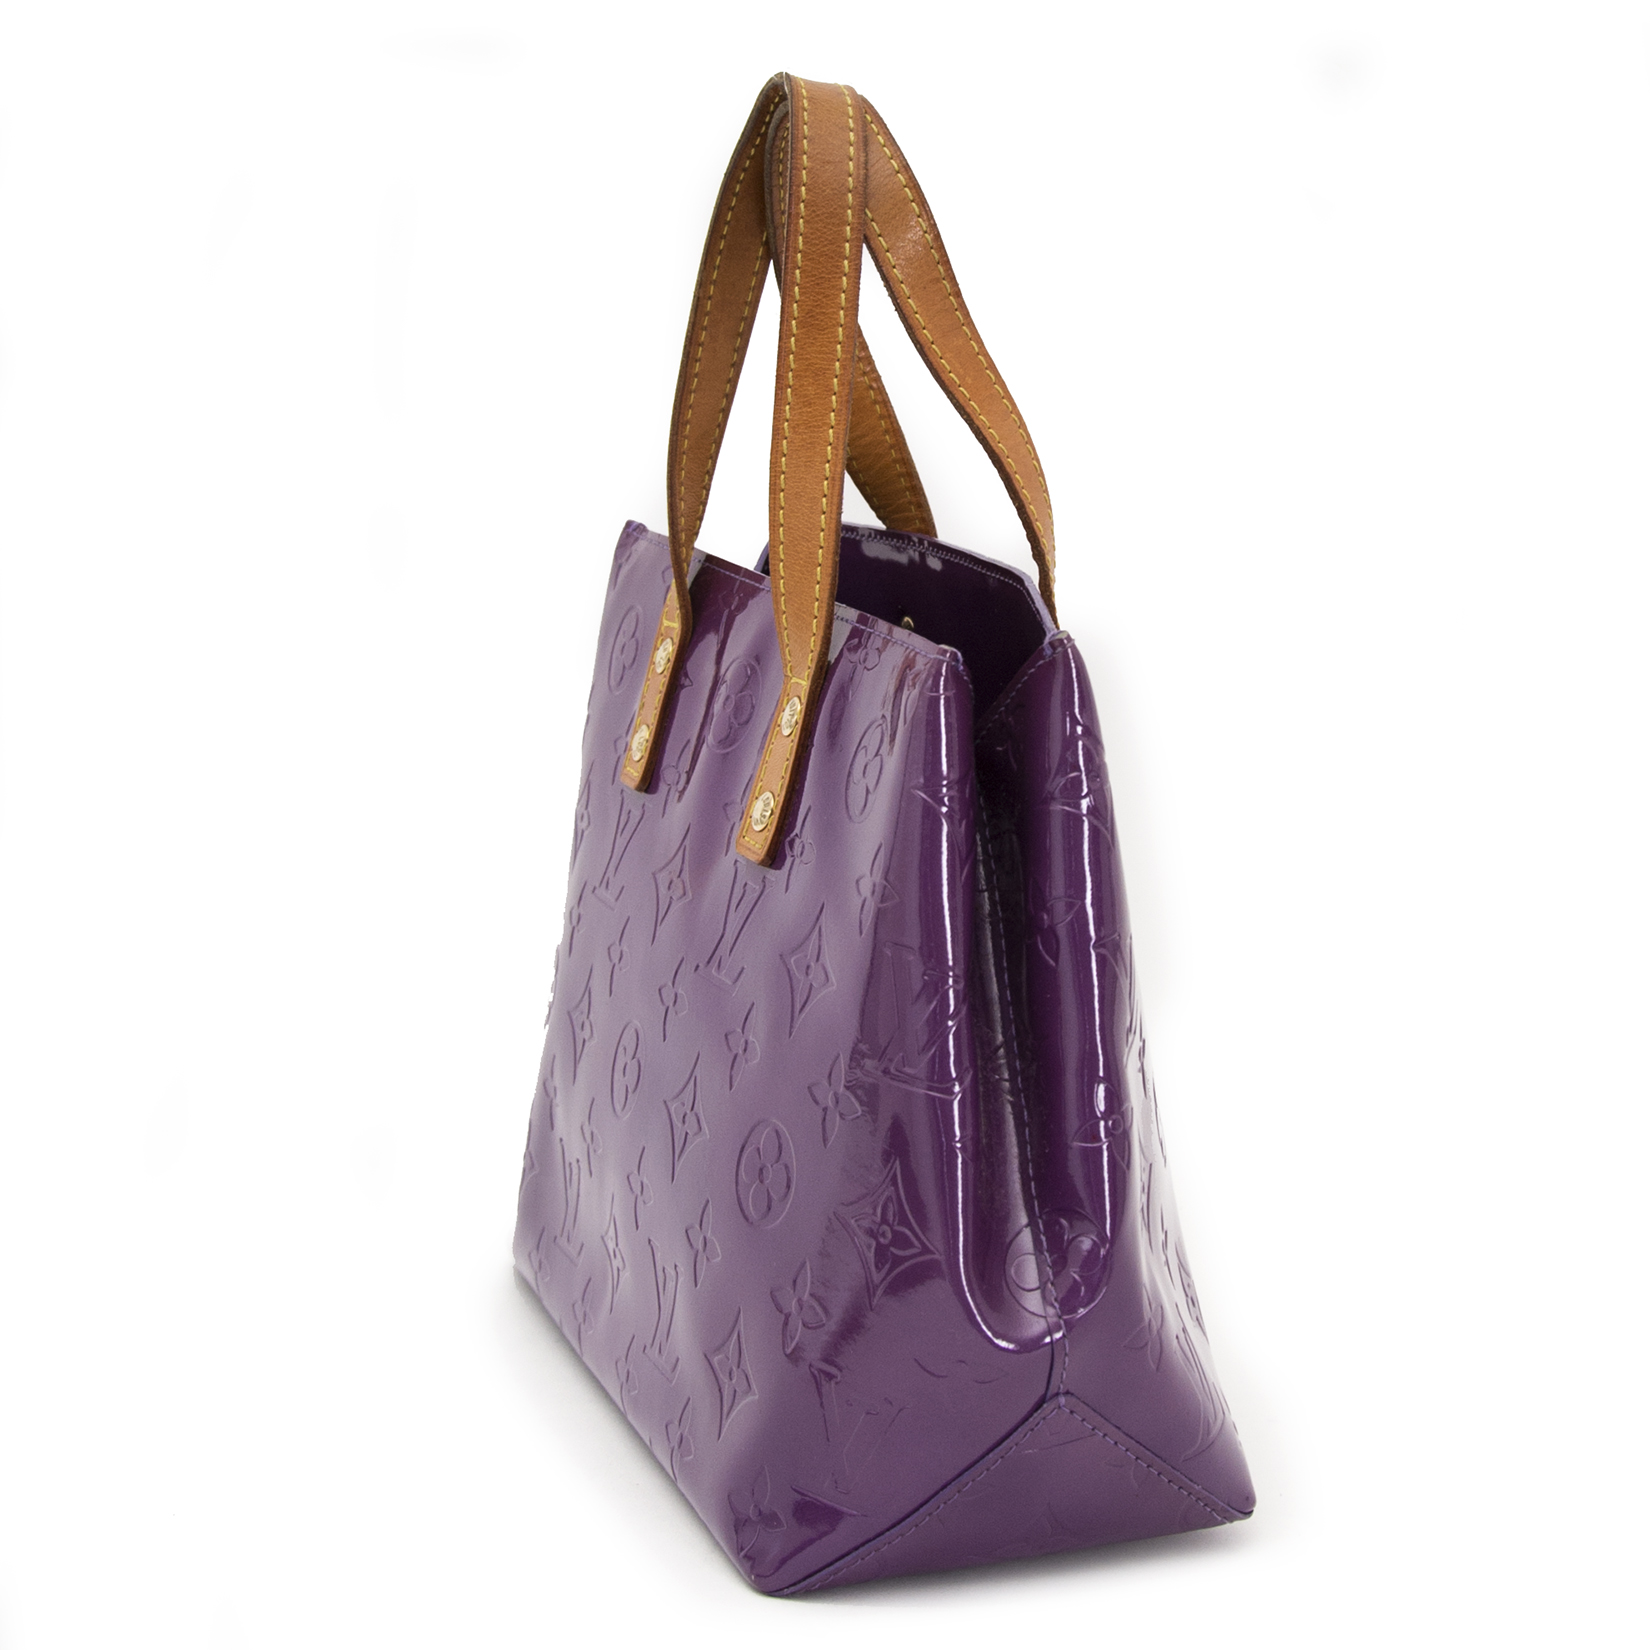 looking for a secondhand Louis Vuitton Vernis Reade PM Violette Top Handle Bag